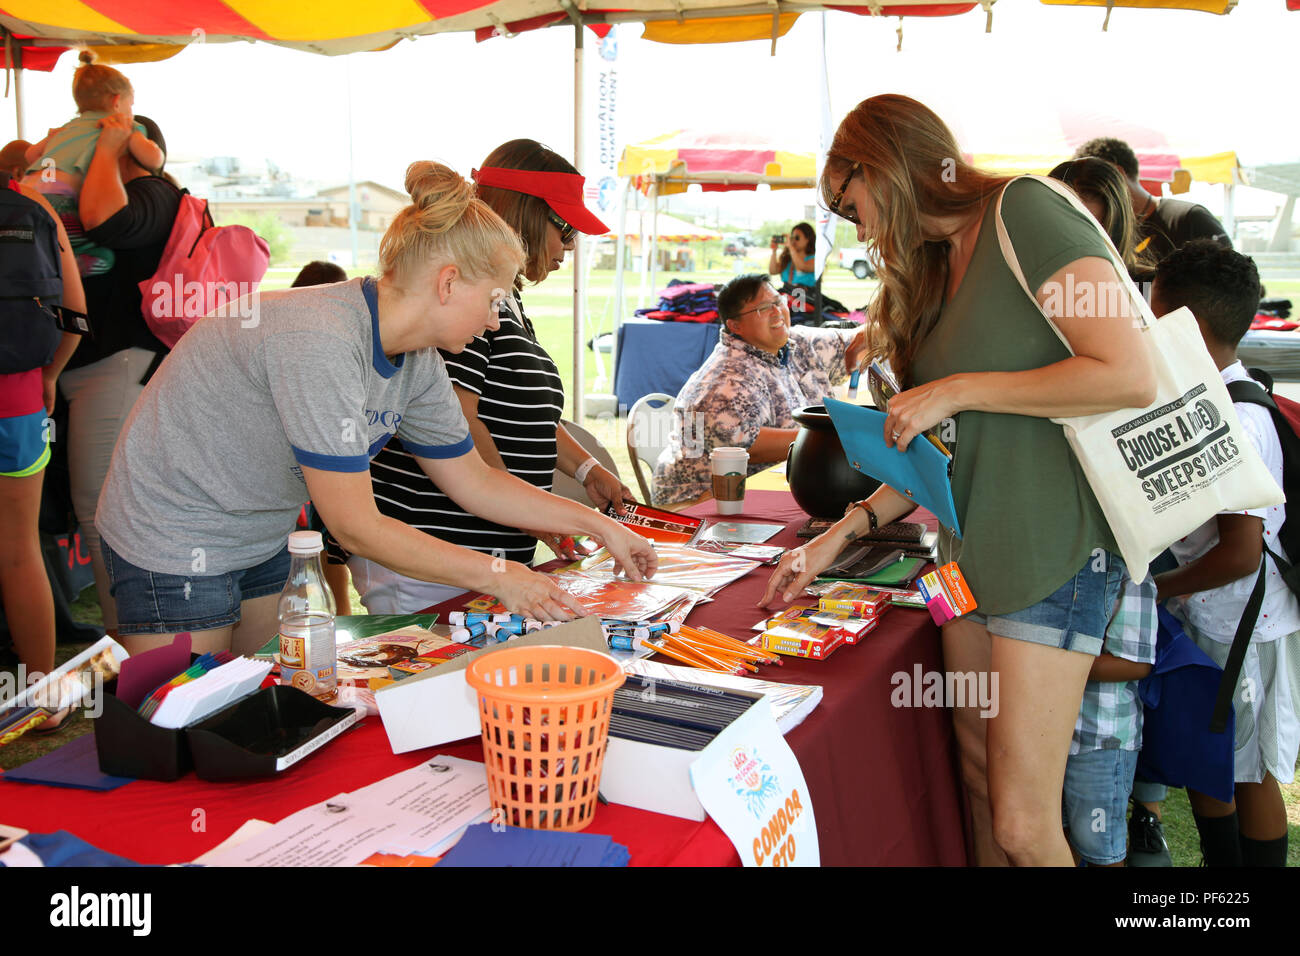 Family members peruse offerings during the Back to School Bash at Victory Field, Marine Corps Air Ground Combat Center, Twentynine Palms, Calif., Aug. 10, 2018. About 1,500 attended the event hosted by Marine Corps Community Services and the Combat Center School Liaison. (Marine Corps photo by Kelly O'Sullivan) - Stock Image